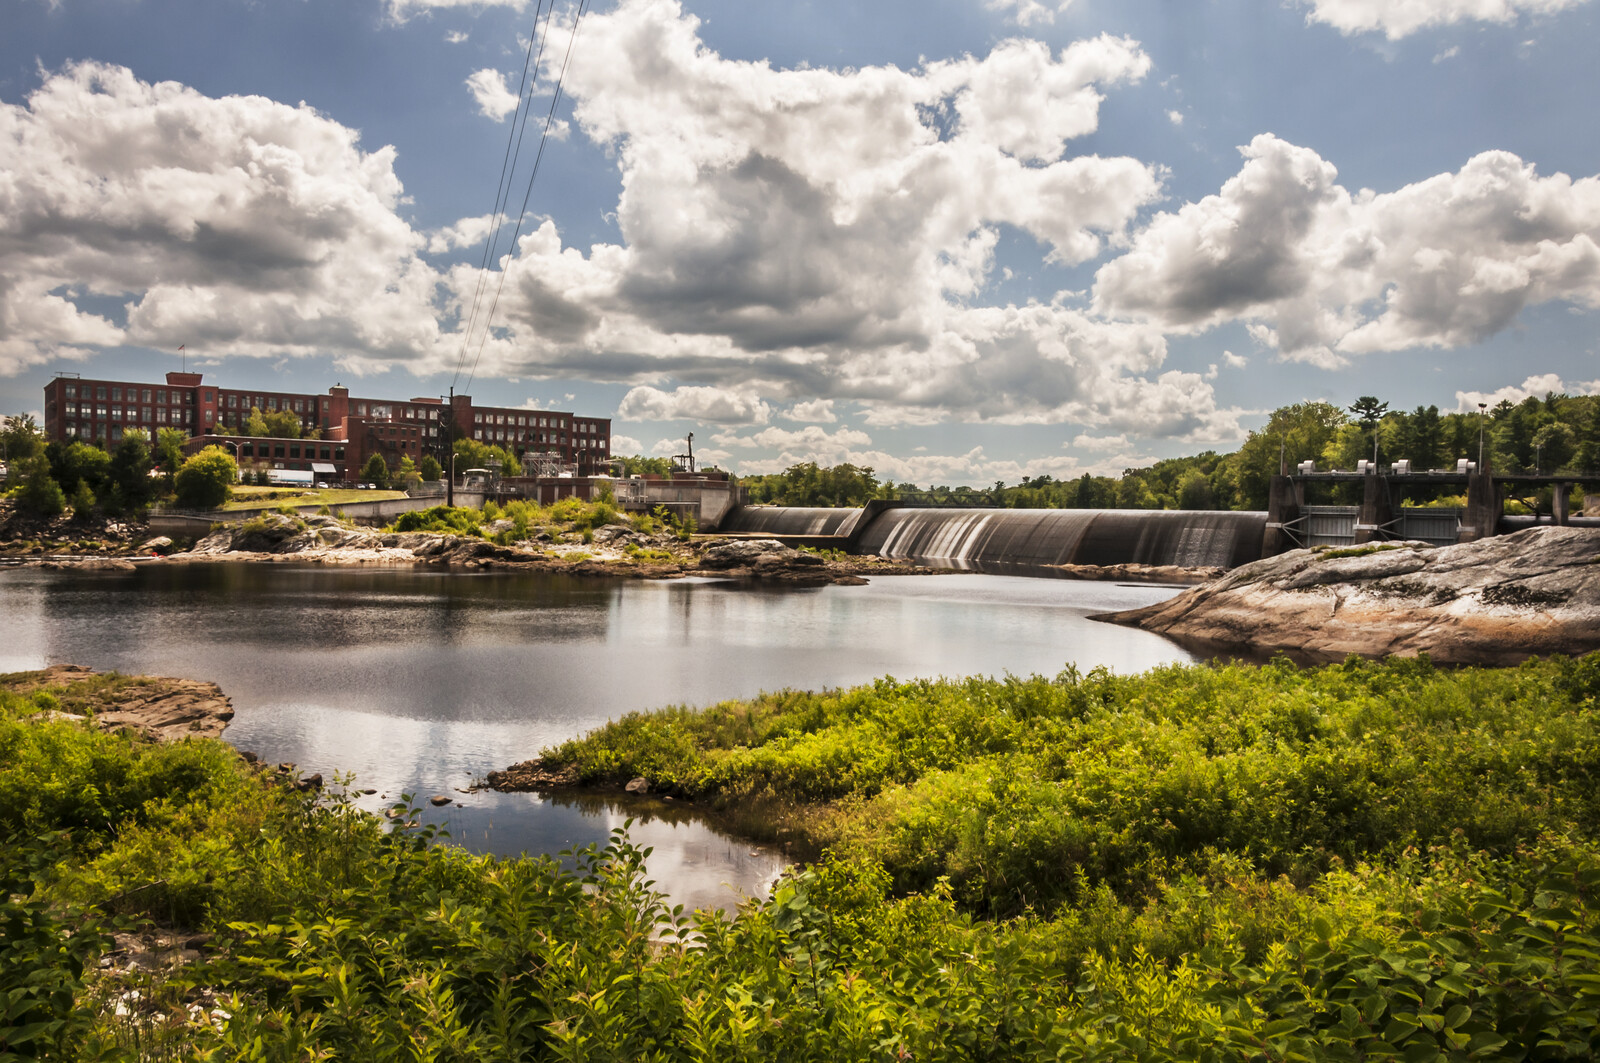 View of Fort Ambross Mill and Ambross Dam in the town of Brunswick in maine,  Blue skies sunny day with greenery lining the water